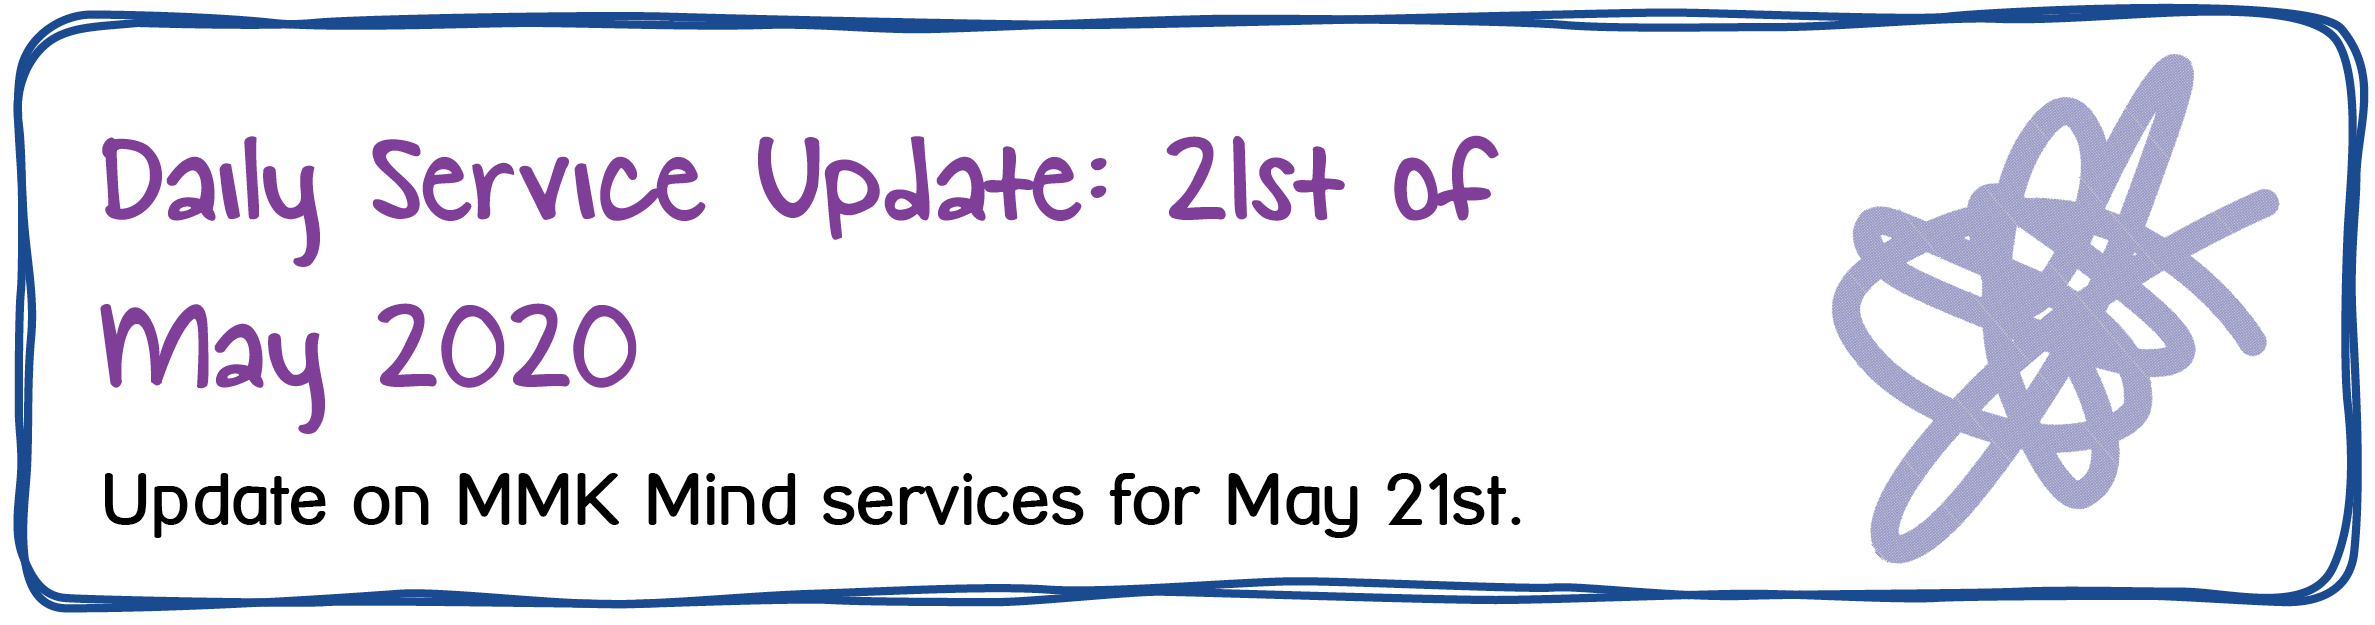 Daily Service Update: 21st of May 2020. Update on MMK Mind services for May 21st.